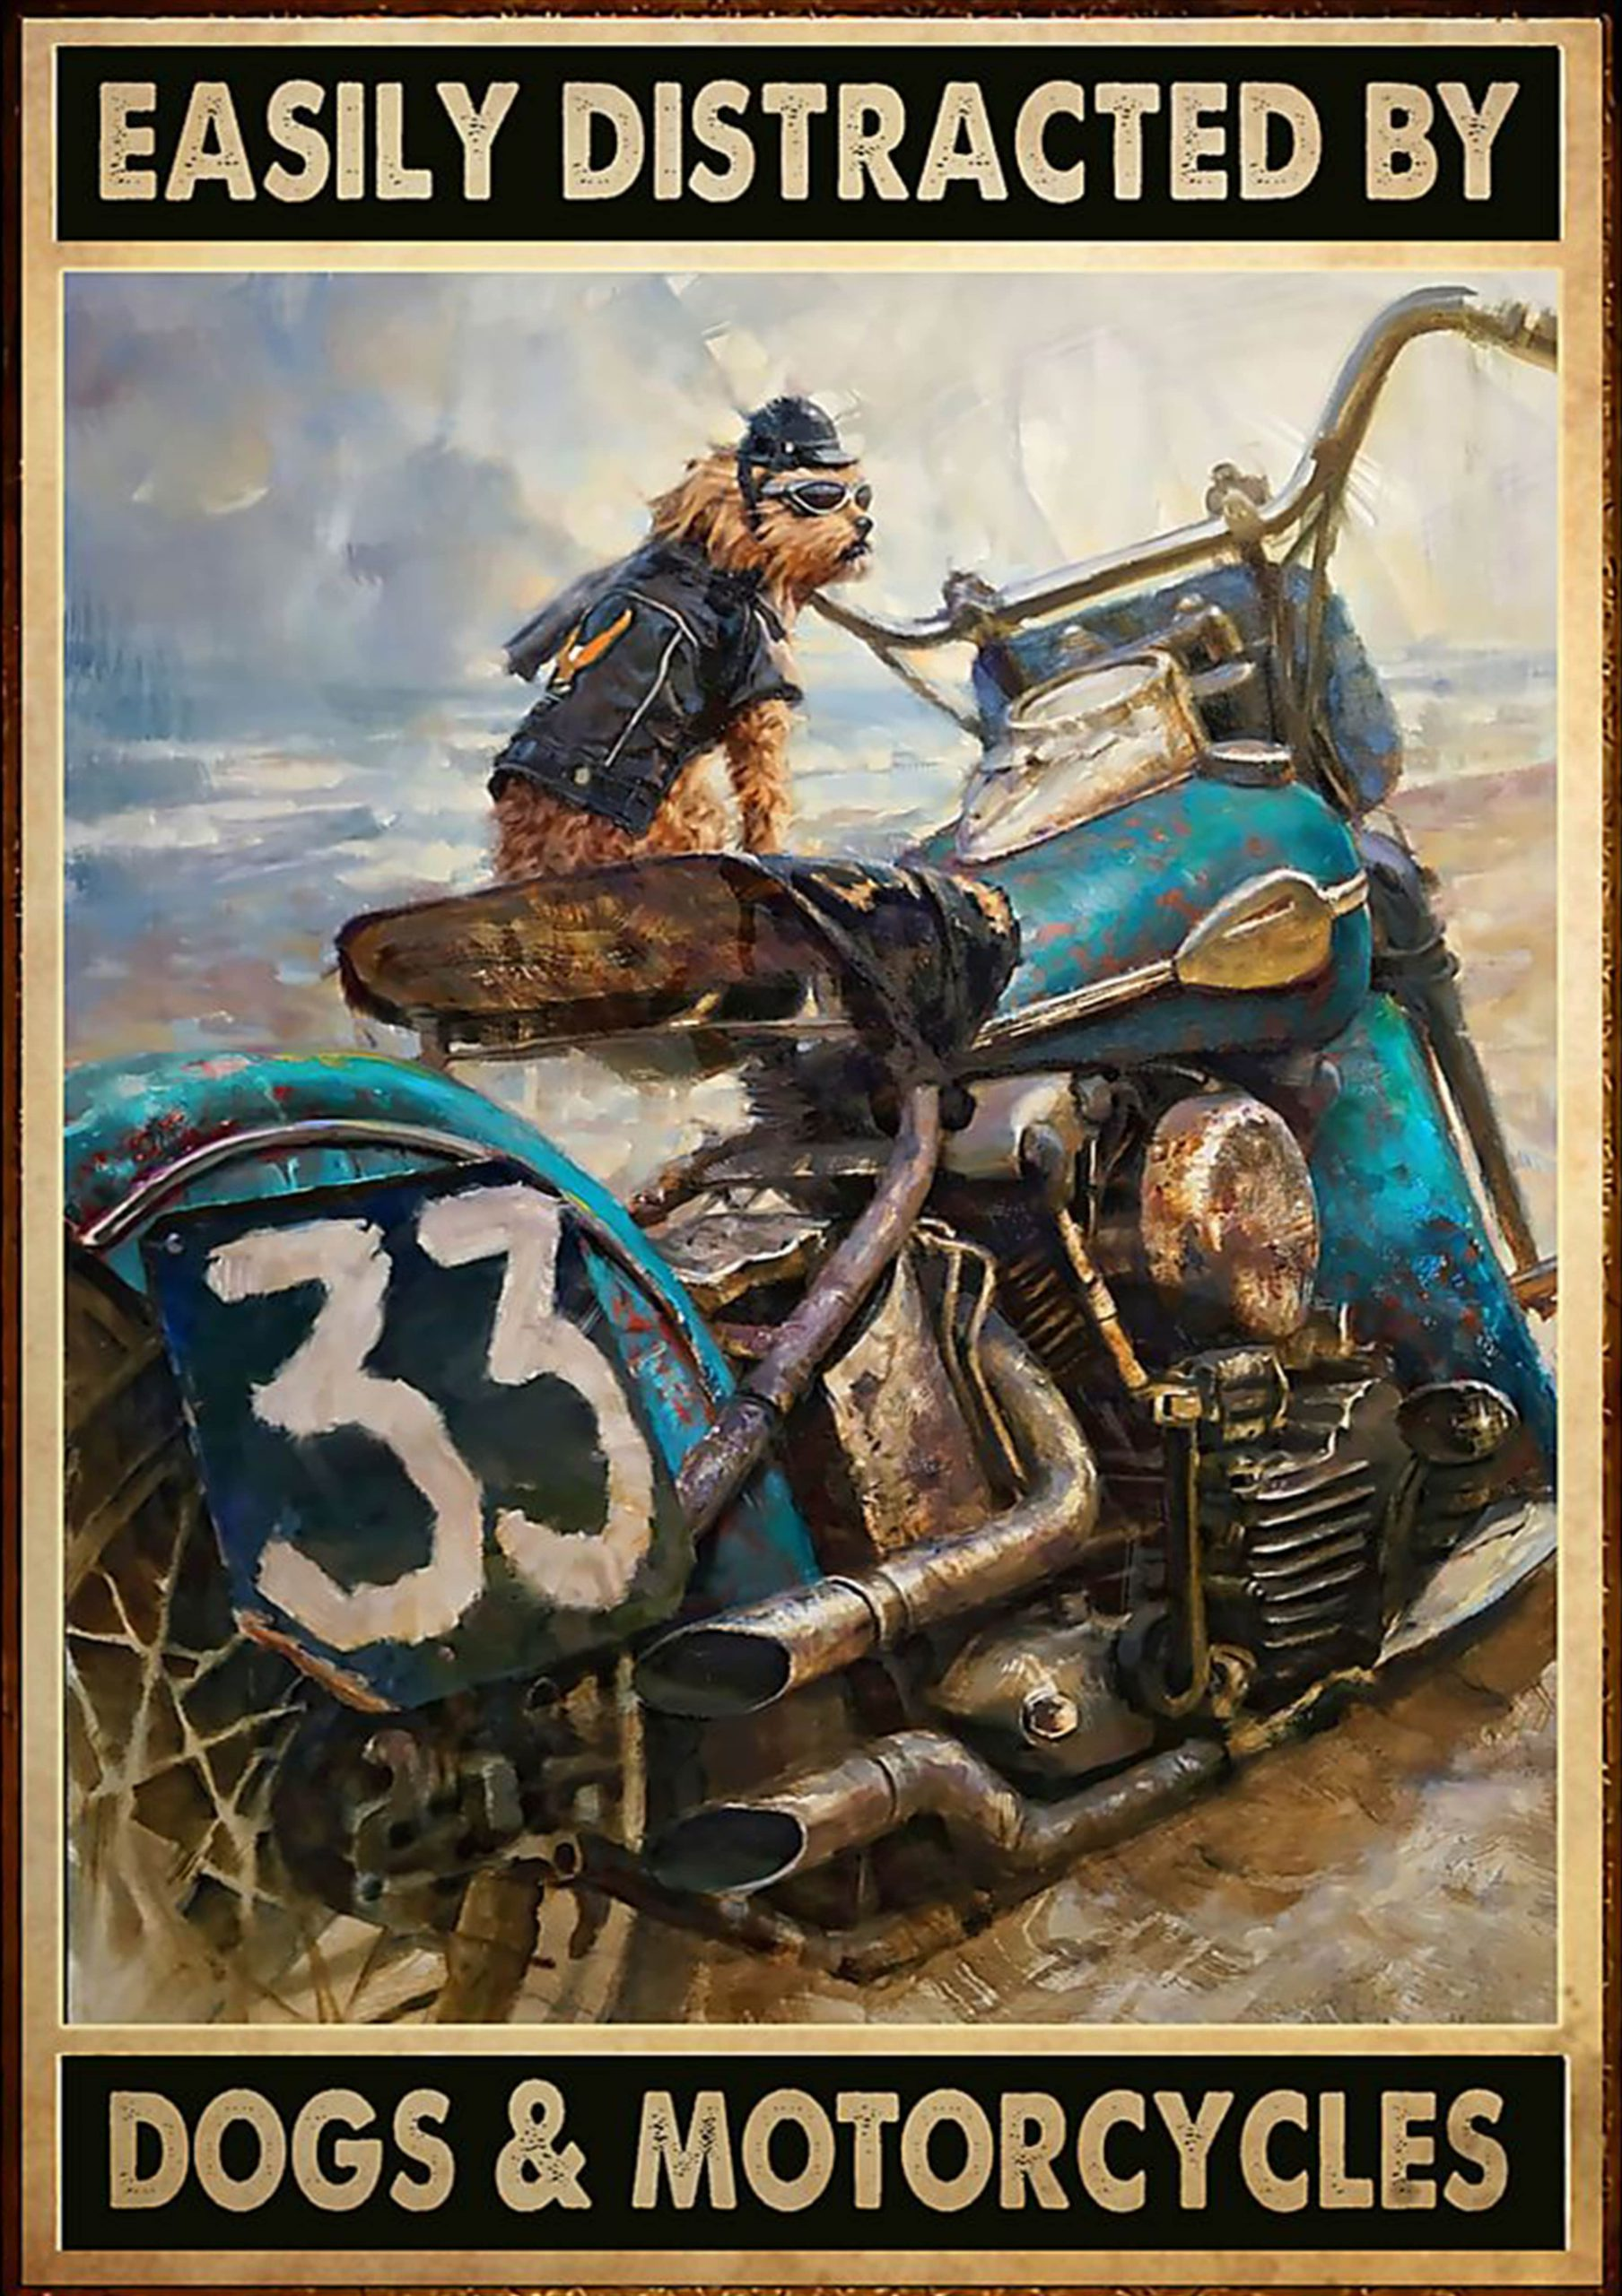 vintage easily distracted by dogs and motorcycles poster 1